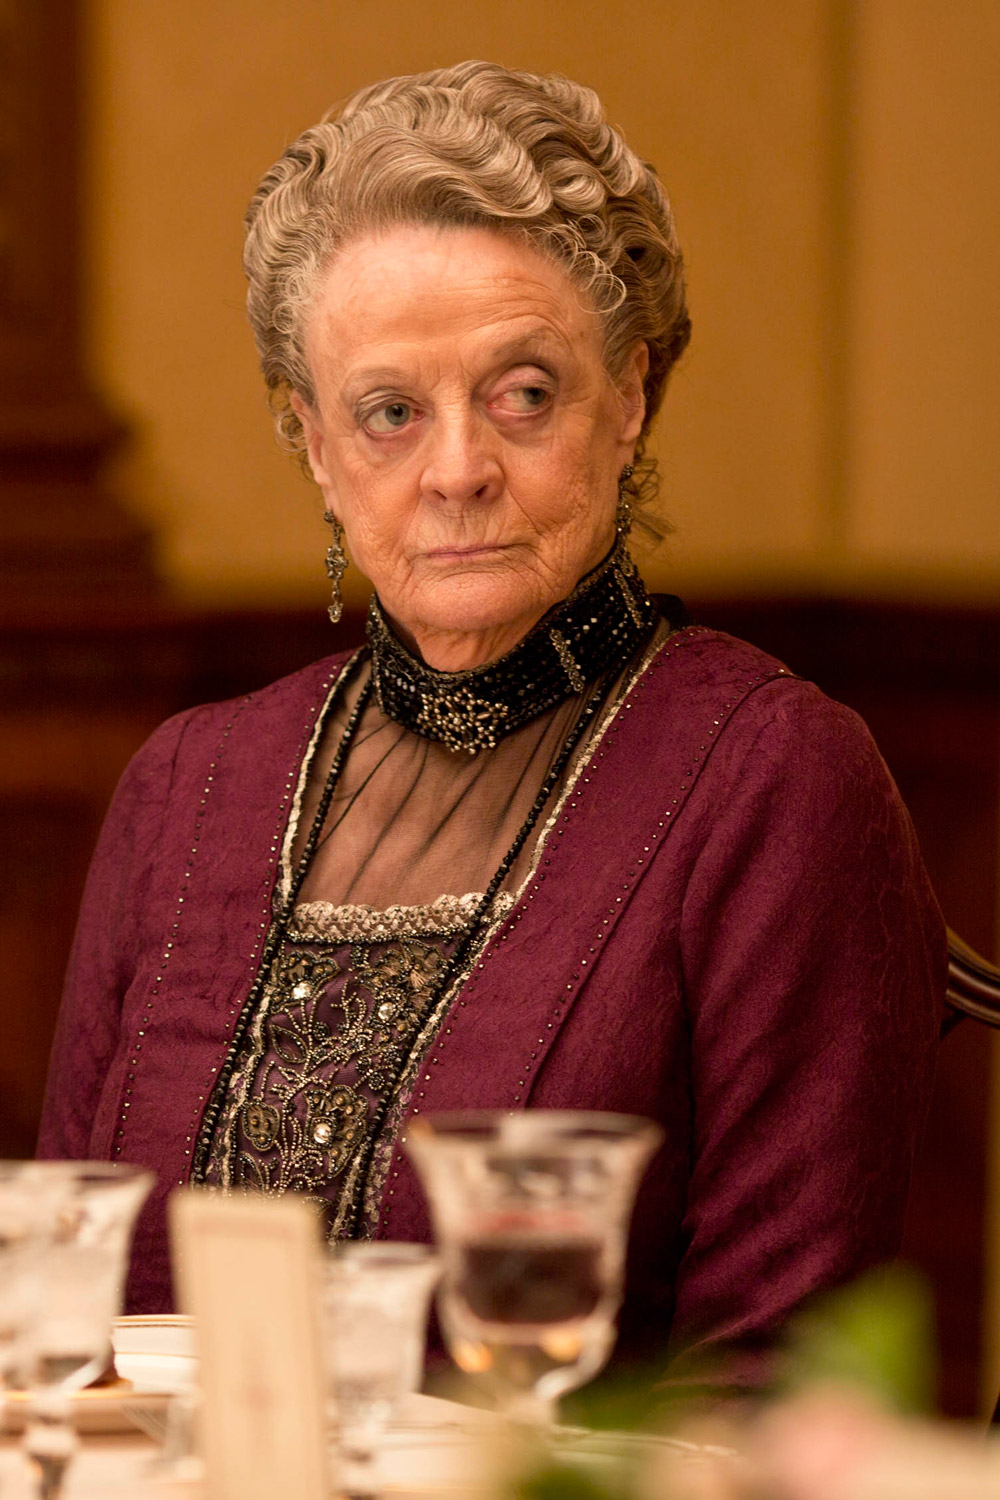 Dowager Countess Quotes Downton Quotes From Violet Crawley That Will Have You In Stitches